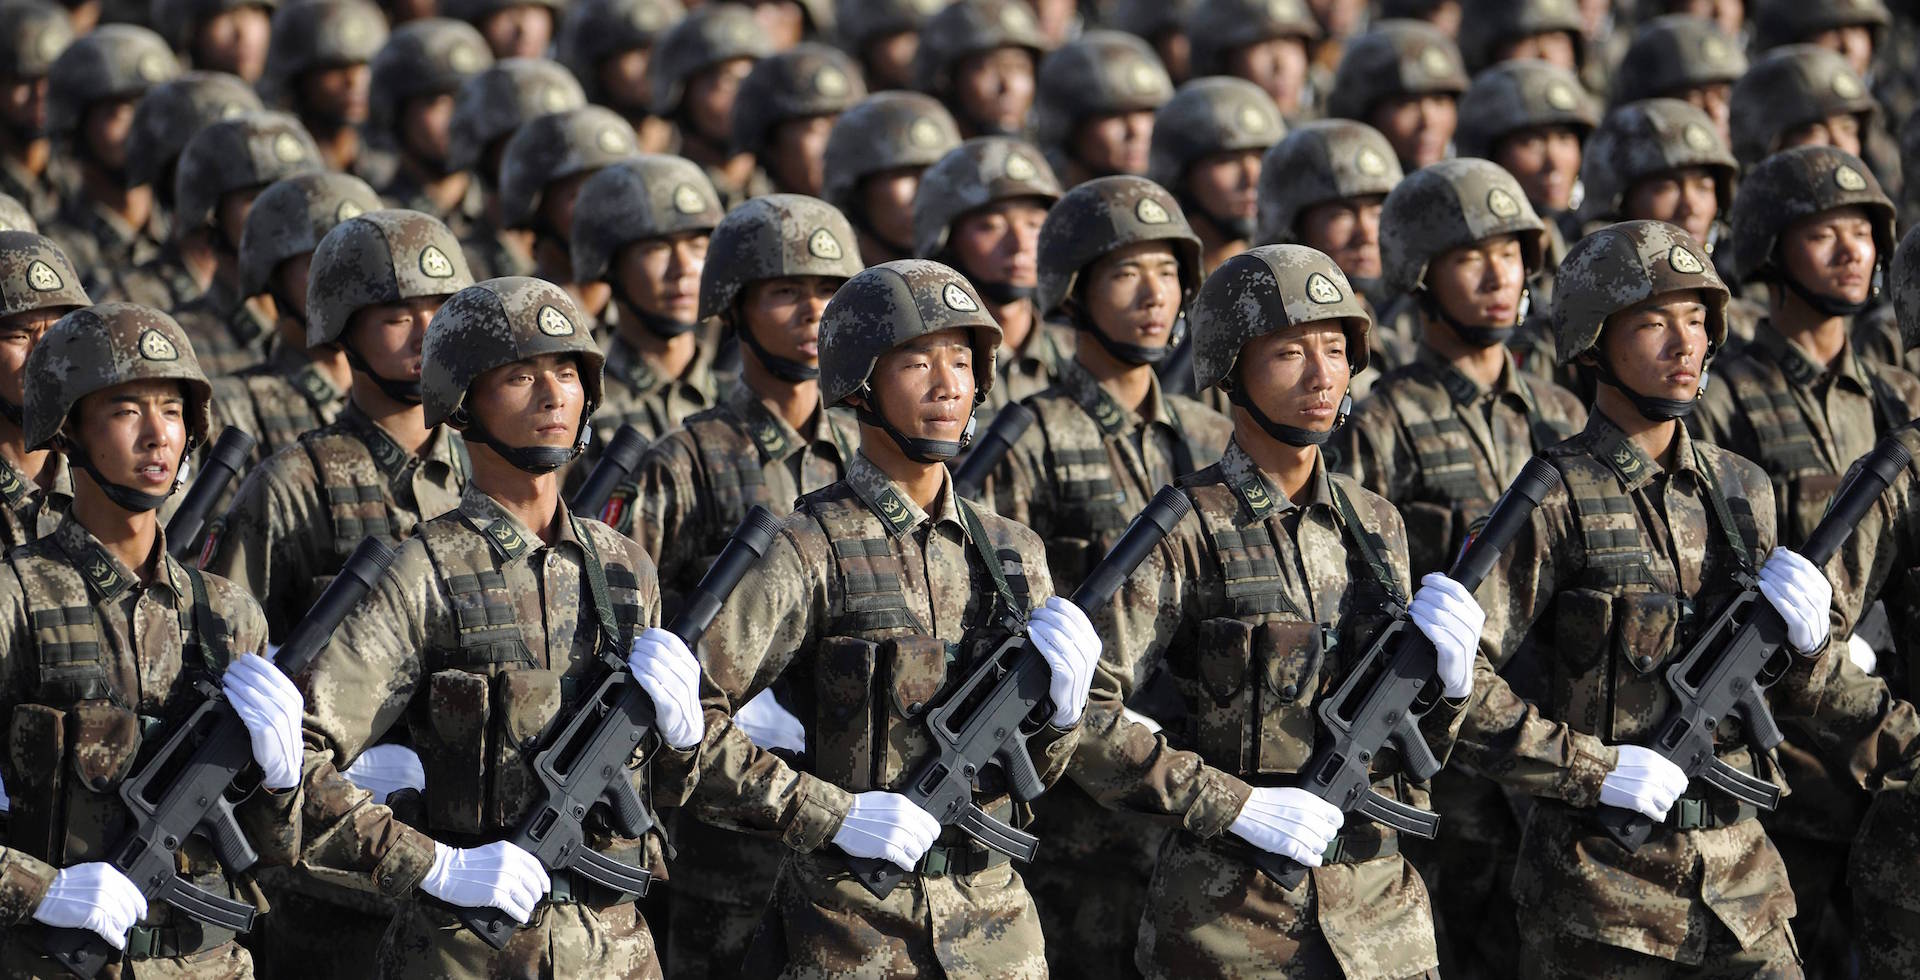 Soldiers from Chinese People's Liberation Army (PLA) Special Operations Forces march in formation during a training session at the 60th National Day Parade Village on the outskirts of Beijing in this September 15, 2009 file photo. China will beef up its military budget by 12.7 percent this year, the government said on March 4, 2011, a return to double-digit spending increases that will stir regional unease.   REUTERS/Joe Chan/Files (CHINA - Tags: MILITARY) CHINA OUT. NO COMMERCIAL OR EDITORIAL SALES IN CHINA